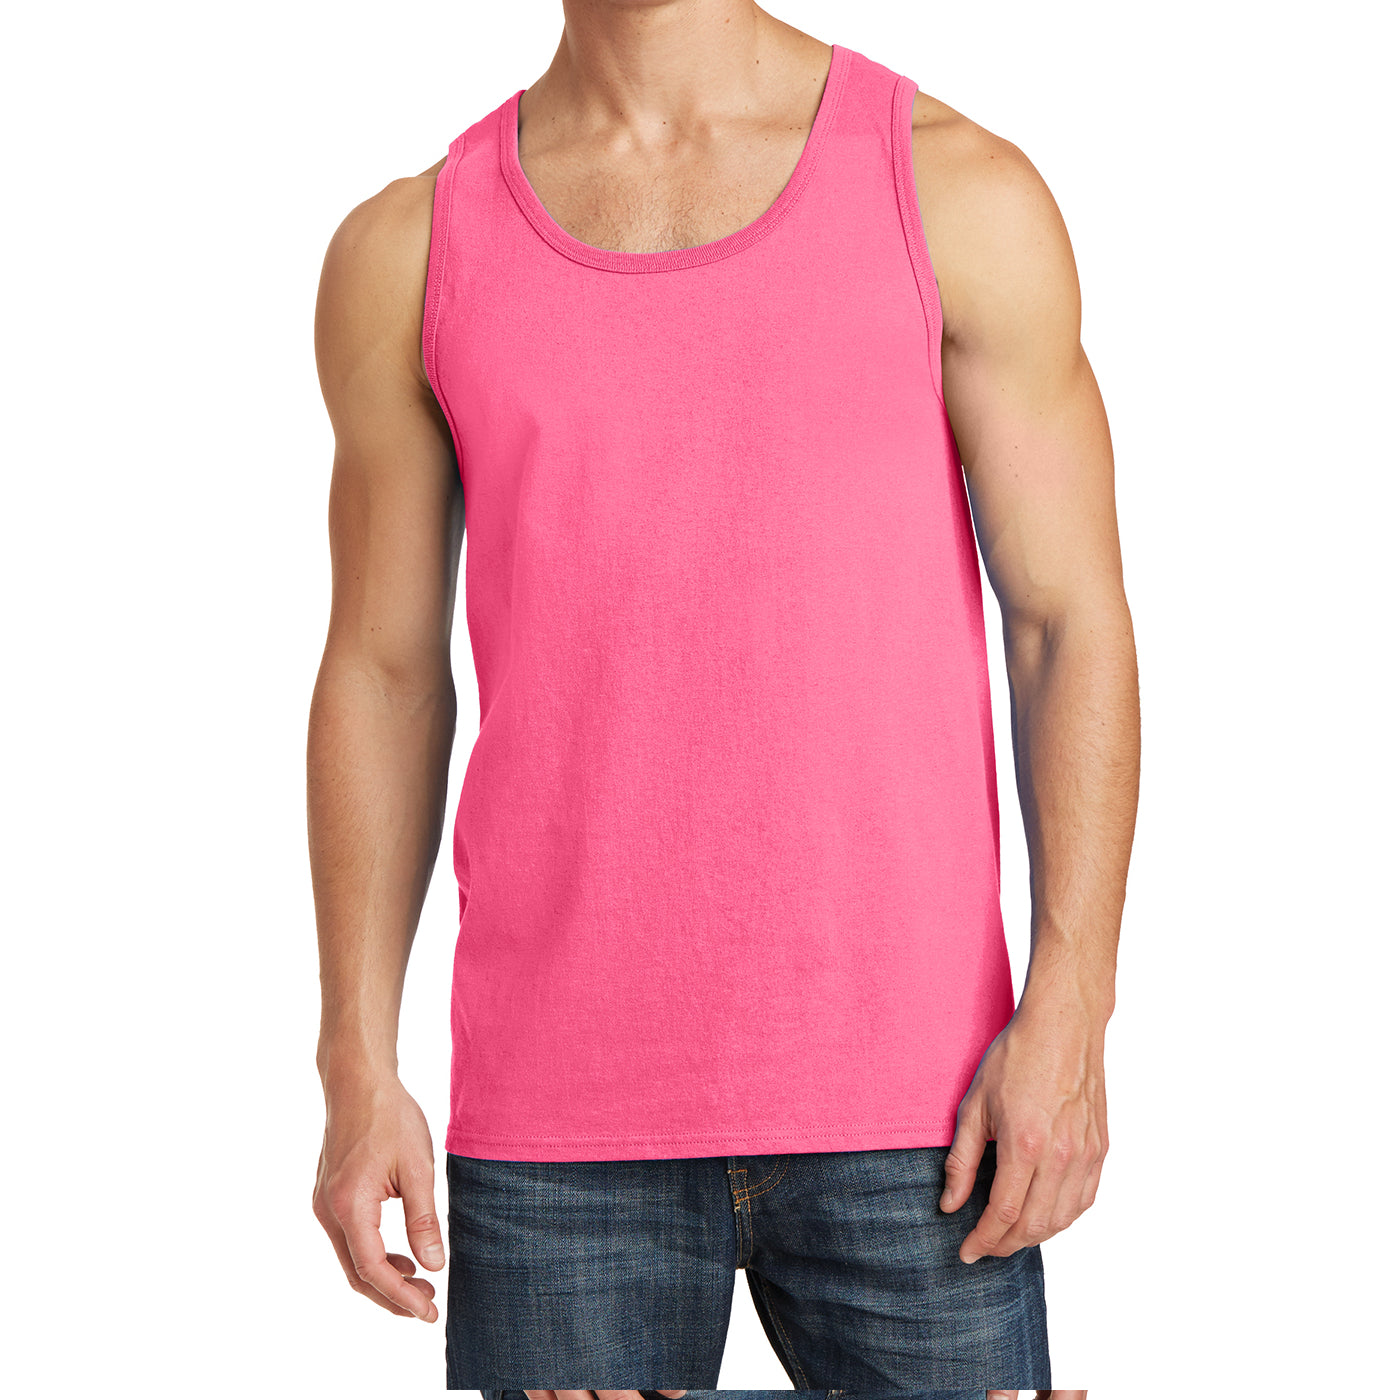 Men's Core Cotton Tank Top - Neon Pink - Front